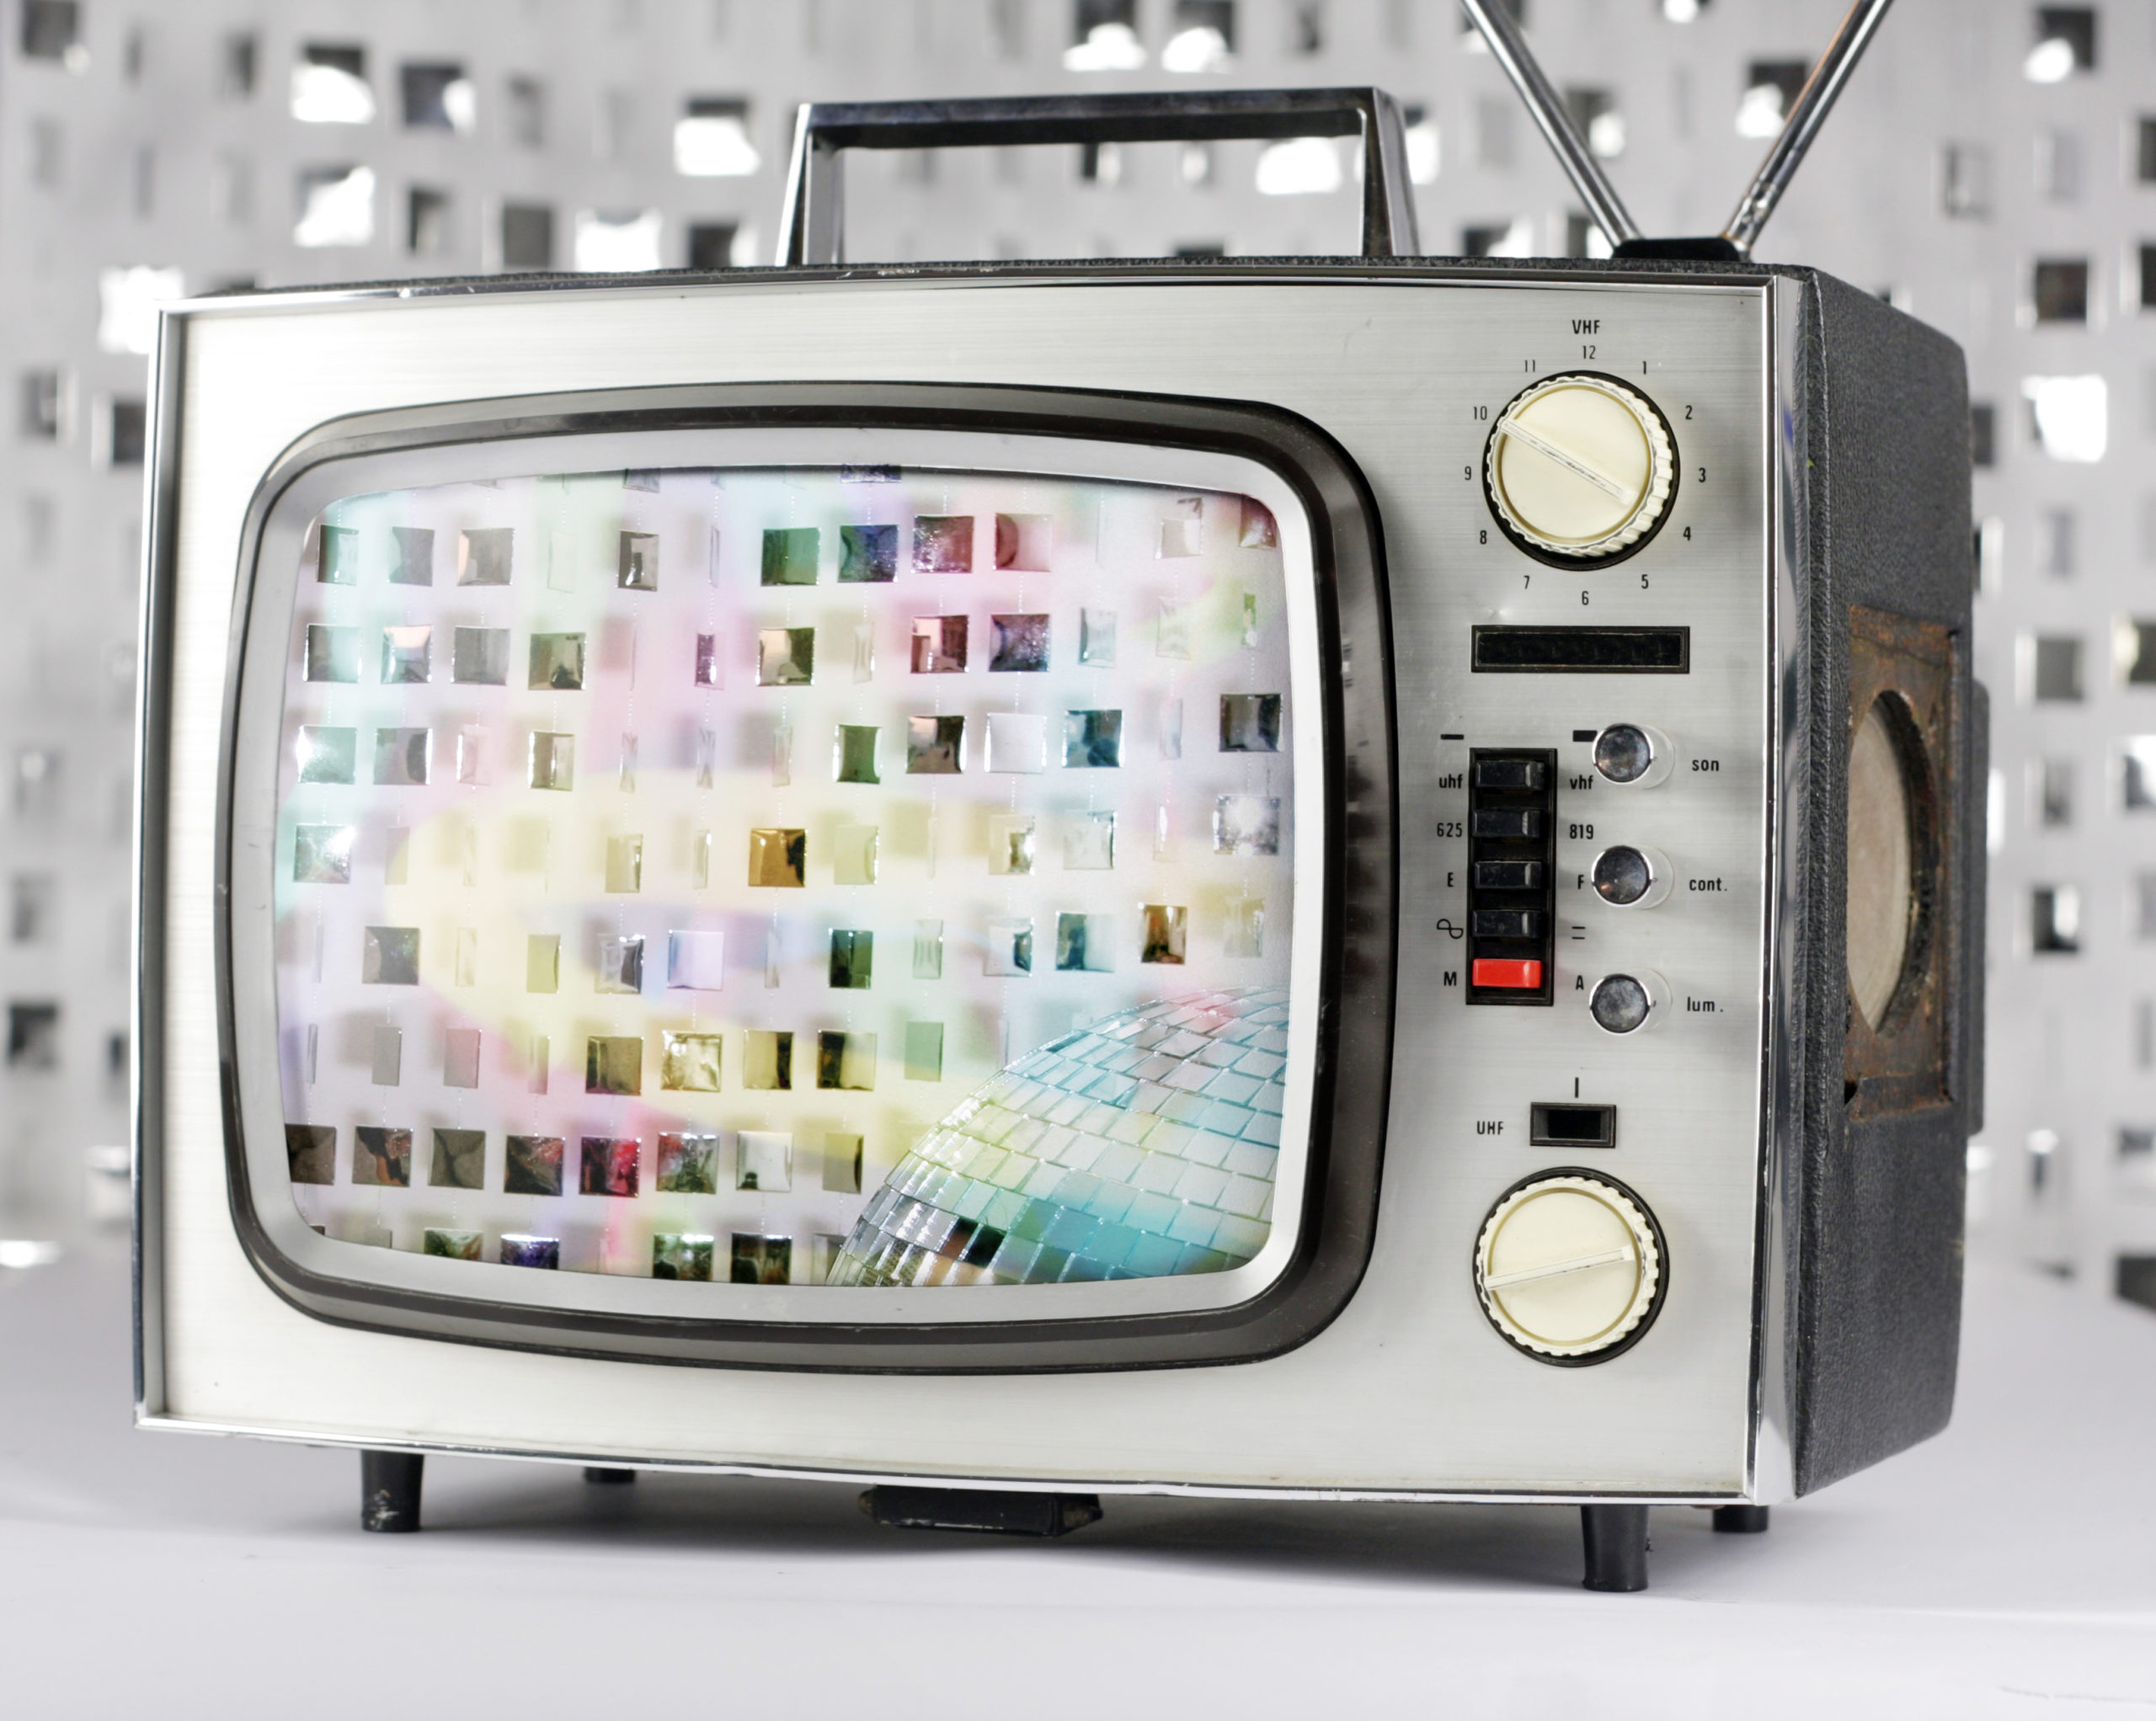 retro tv with sparklling discoball on screen